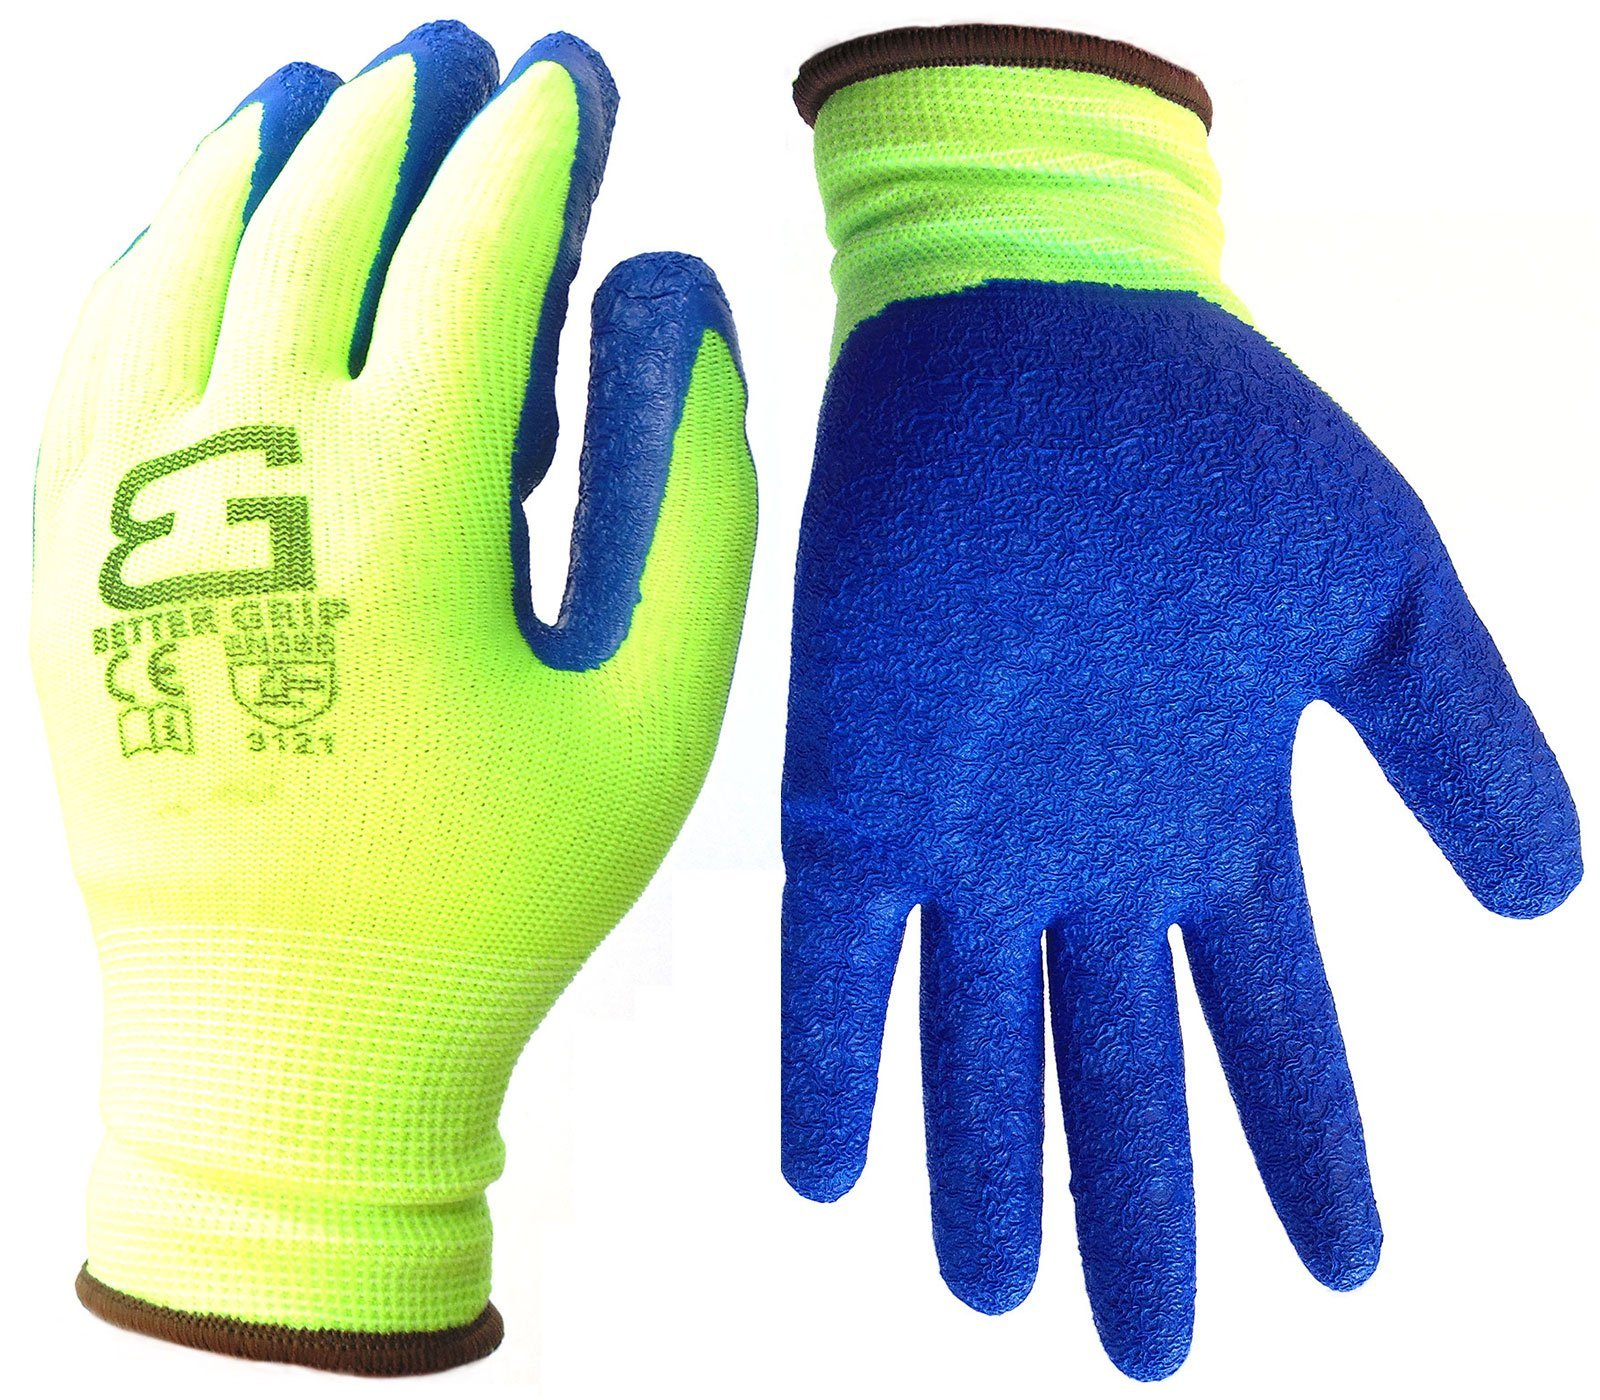 Better Grip Nylon Glove with Textured Latex Coating Gripping Gloves, Crinkle Finished, Large, 6-Pair, Fluorescent Lime